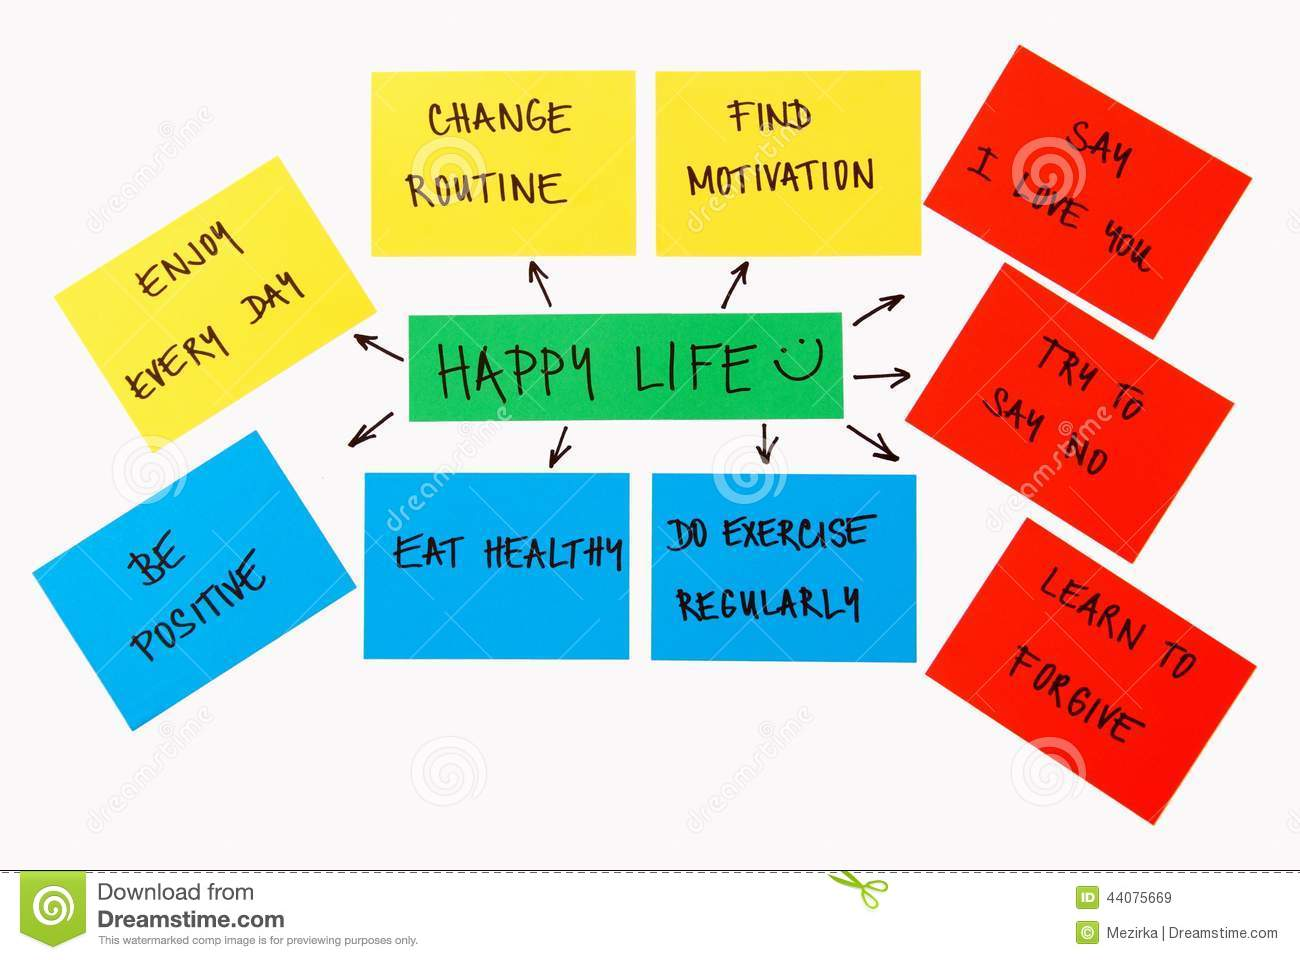 Hedonism and the concept of happiness in life